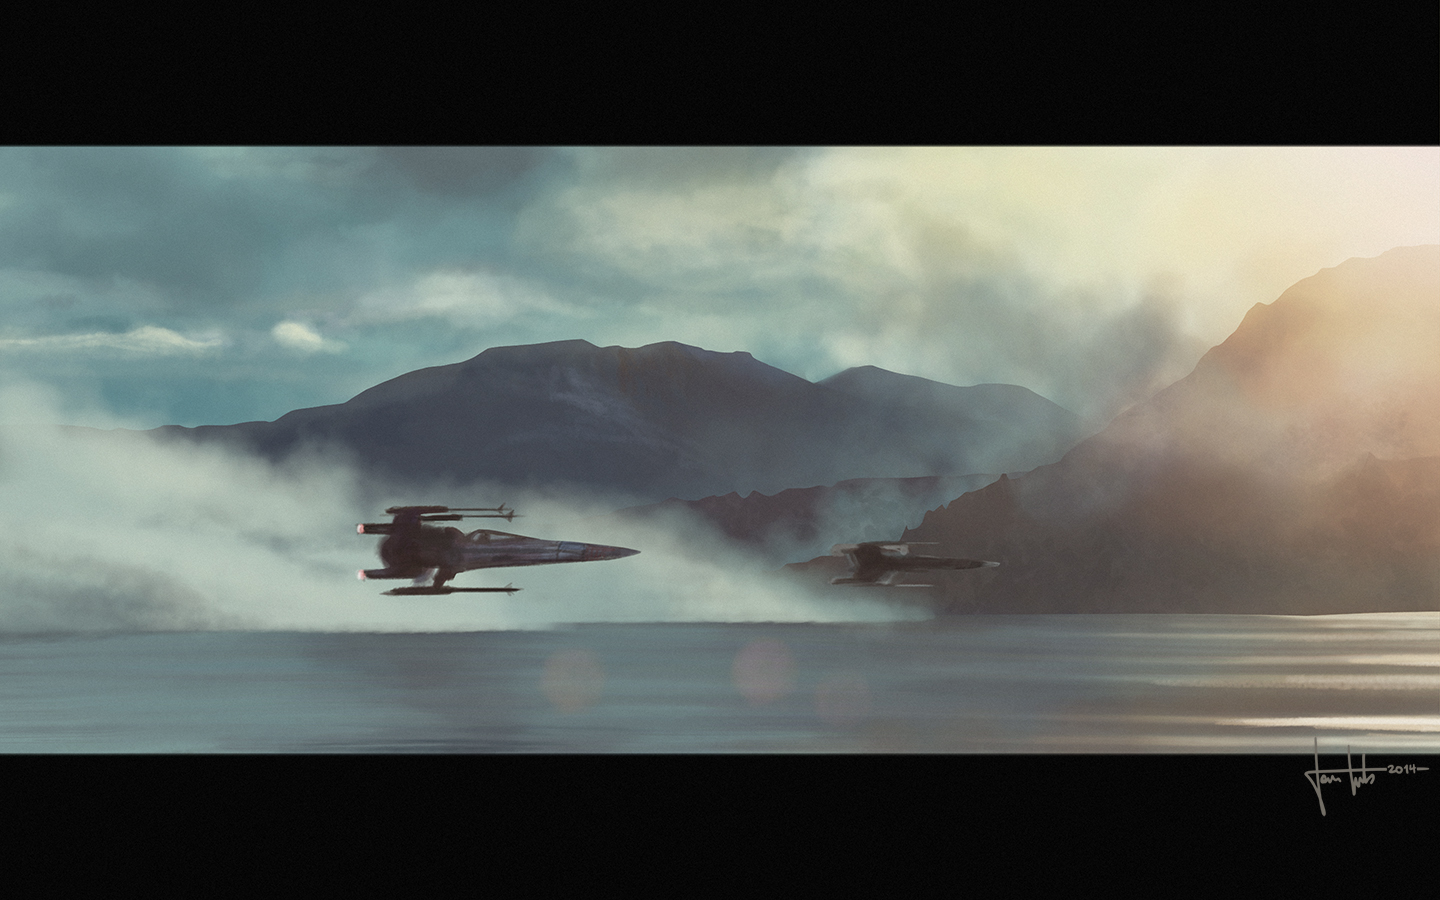 star wars the force awakens x wings by hyshinara on